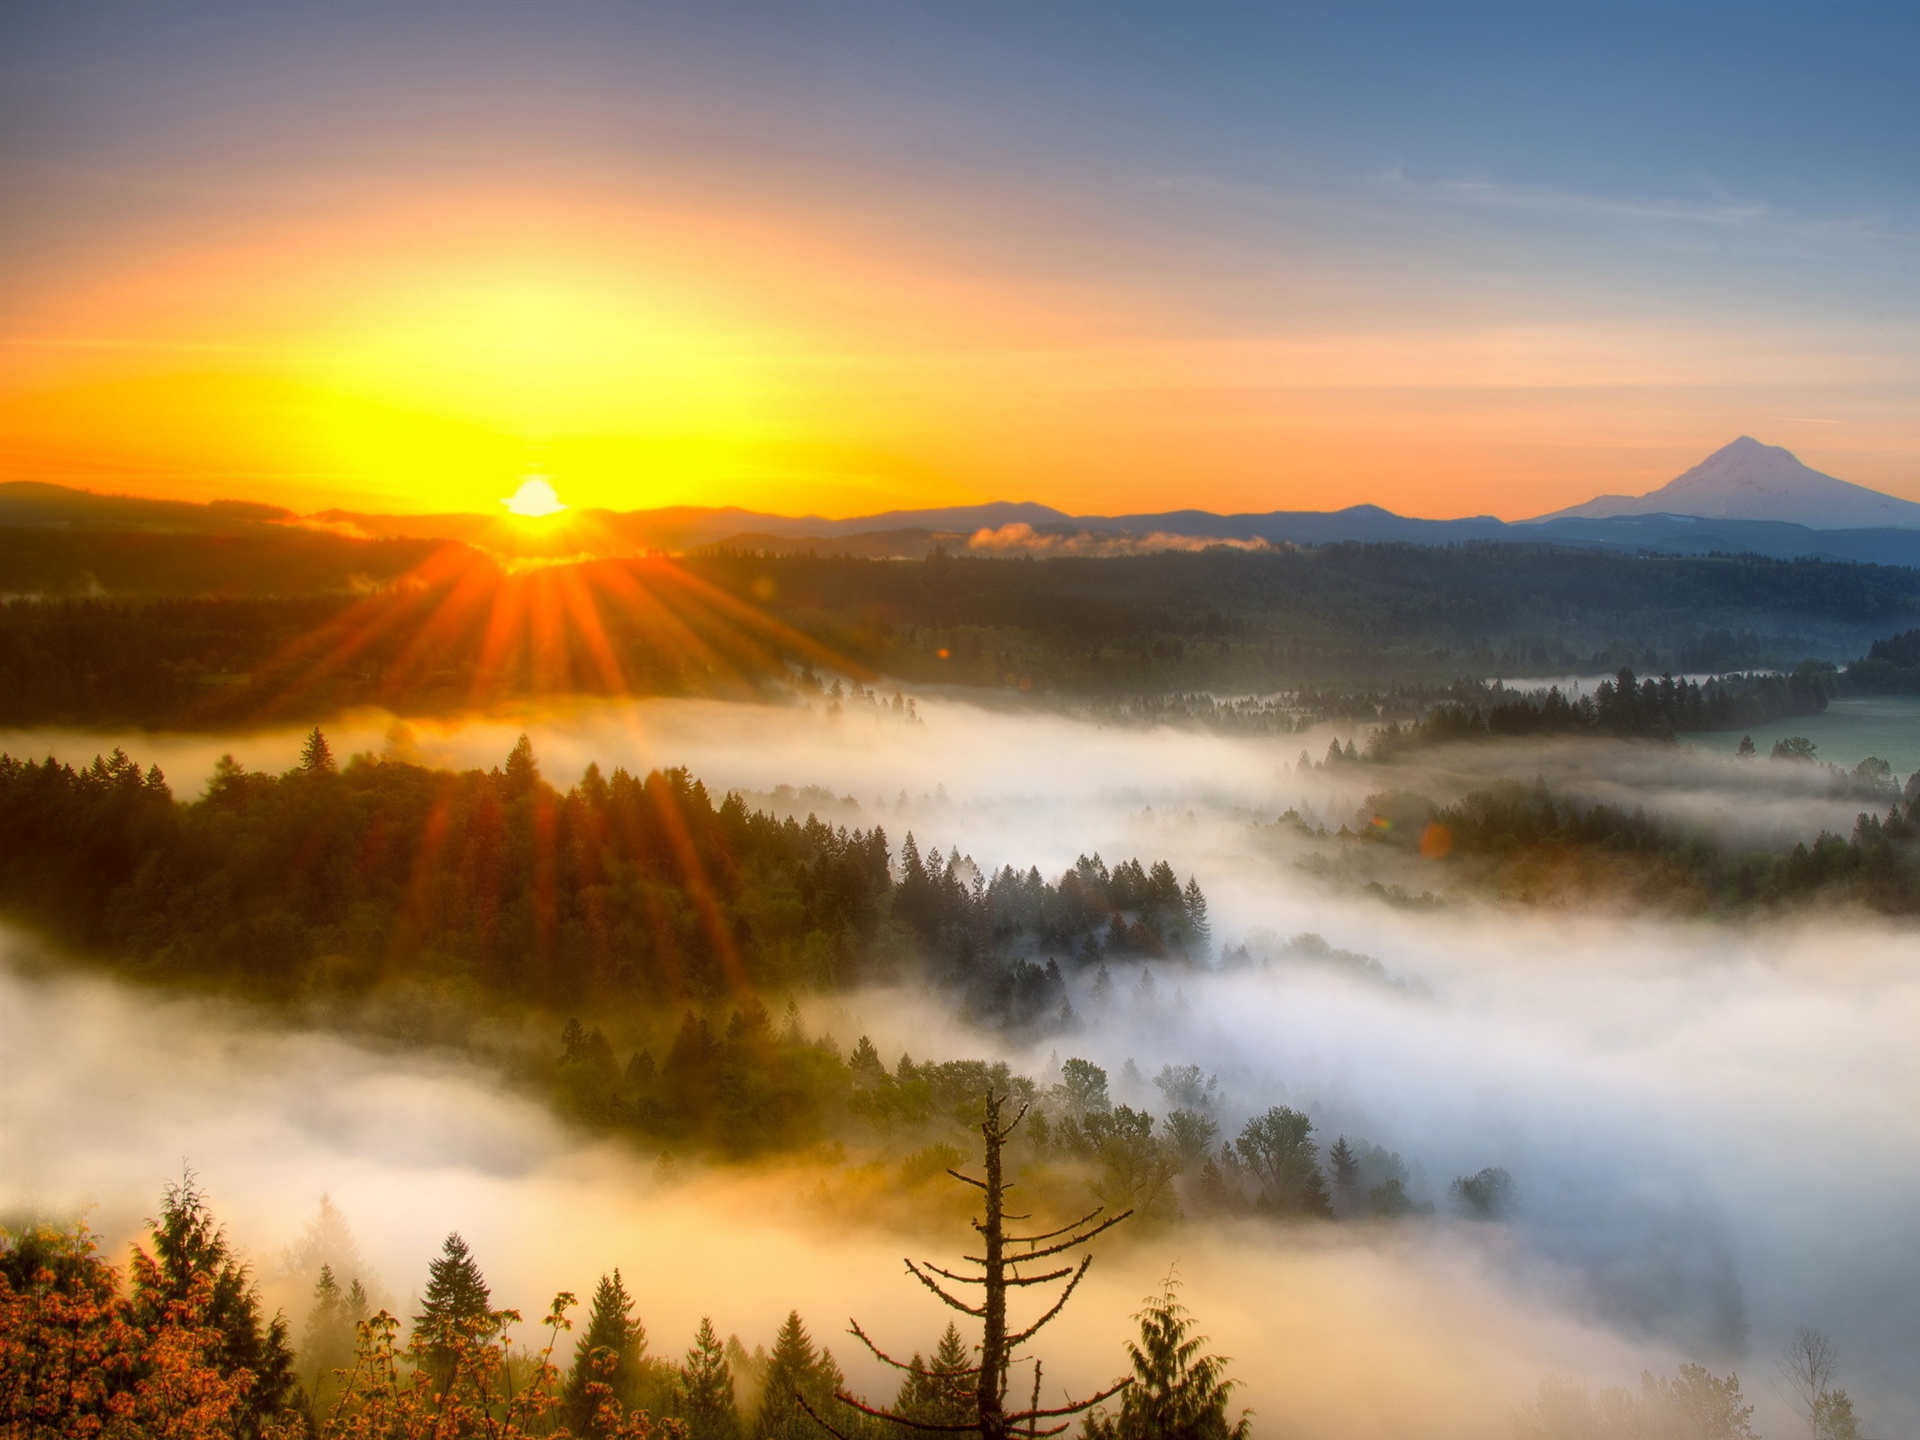 Wallpaper Morning Mist Mountain Sunrise 2560x1600 Hd Picture Image